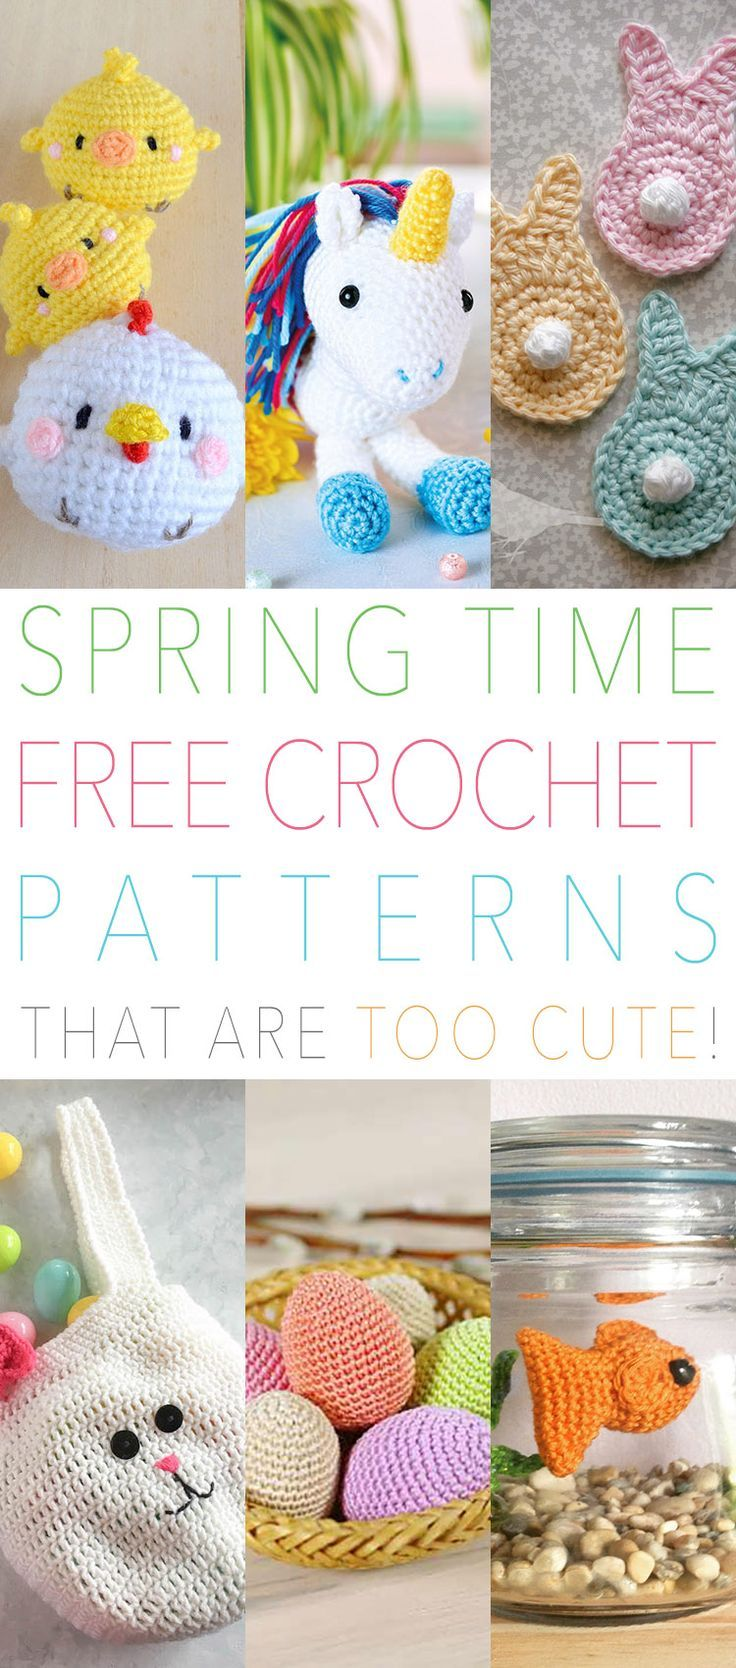 Spring Time Free Crochet Patterns that are TOO Cute   All things ...